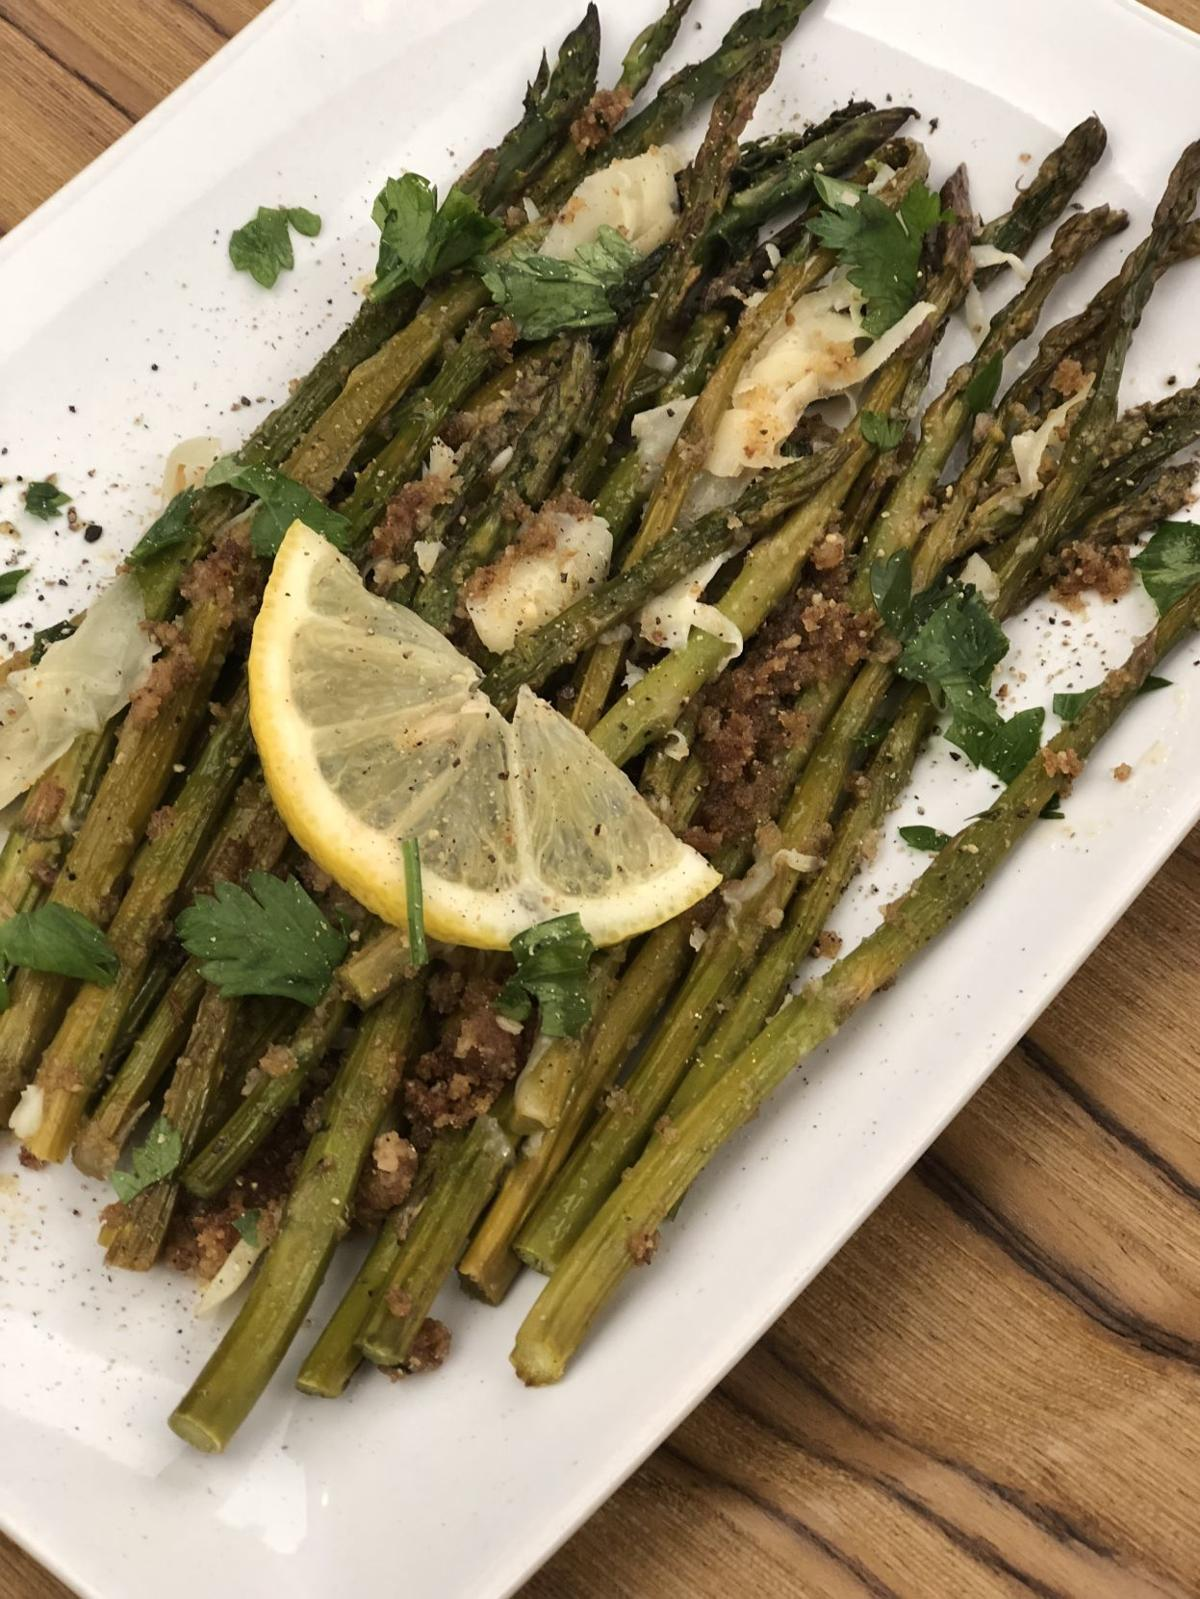 Oven Roasted Asparagus with Parmesan and Lemon